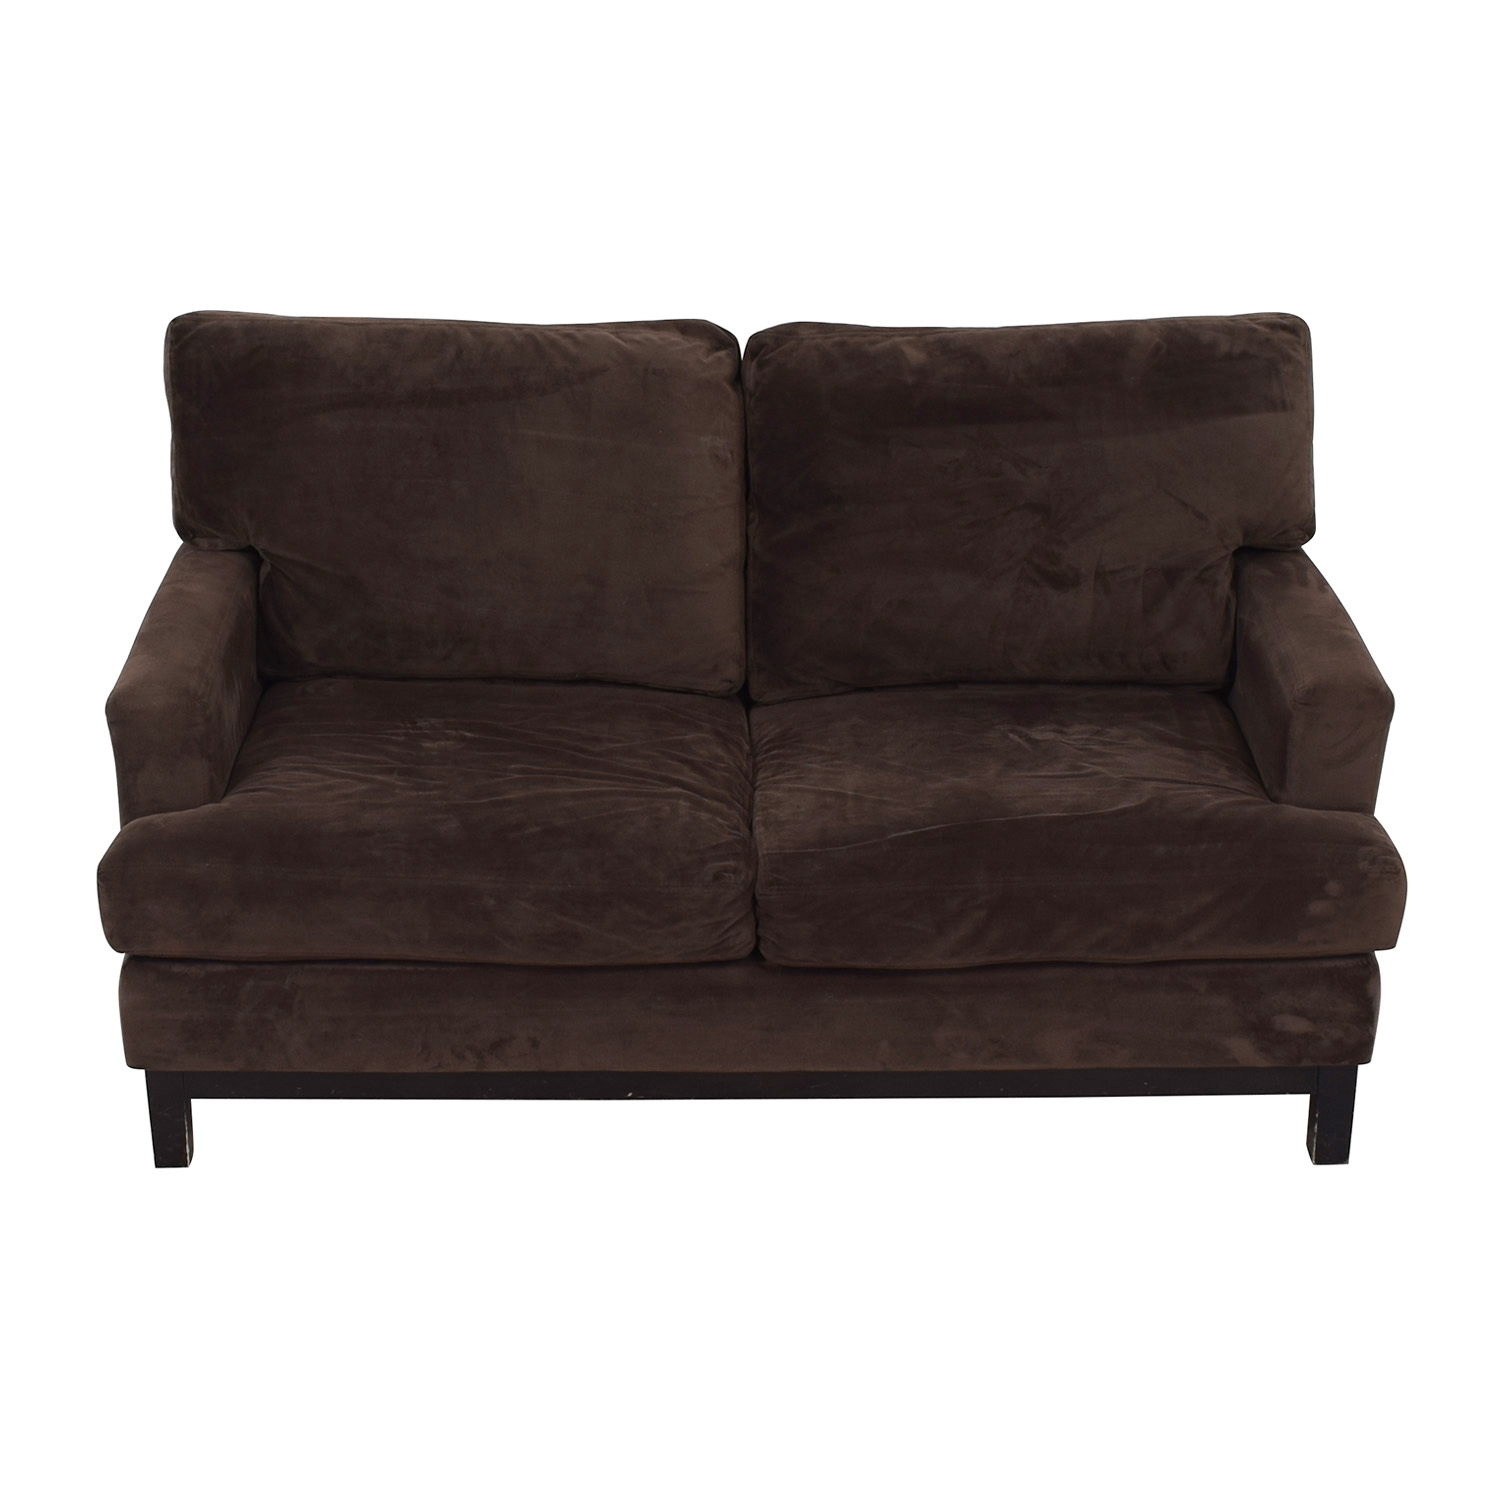 Mitchell Gold + Bob Williams Mitchell Gold + Bob Williams Brown Velvet Loveseat nyc